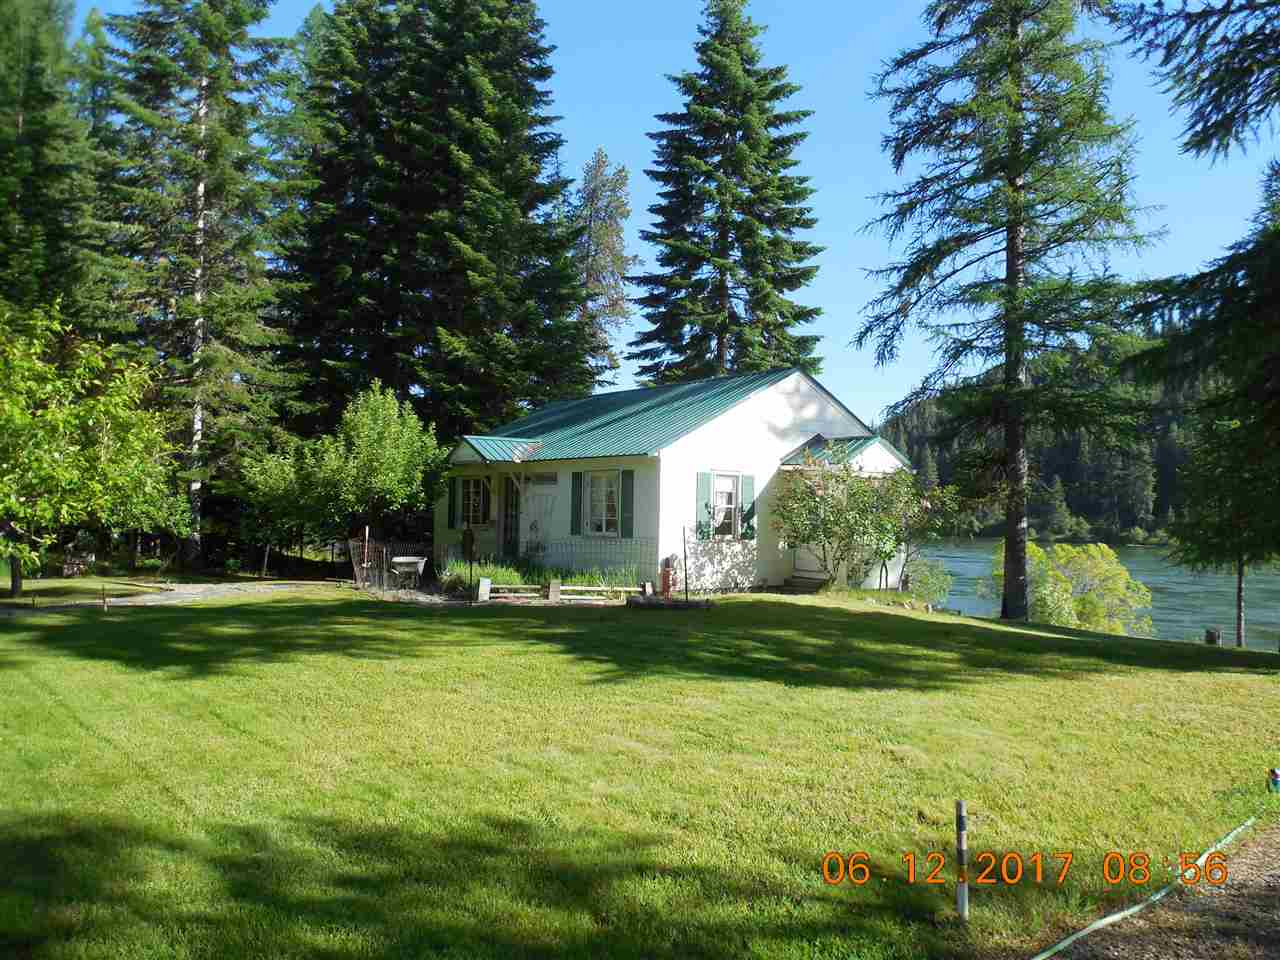 Single Family Home for Sale at 403841 Hwy 20 Hwy 403841 Hwy 20 Hwy Cusick, Washington 99119 United States